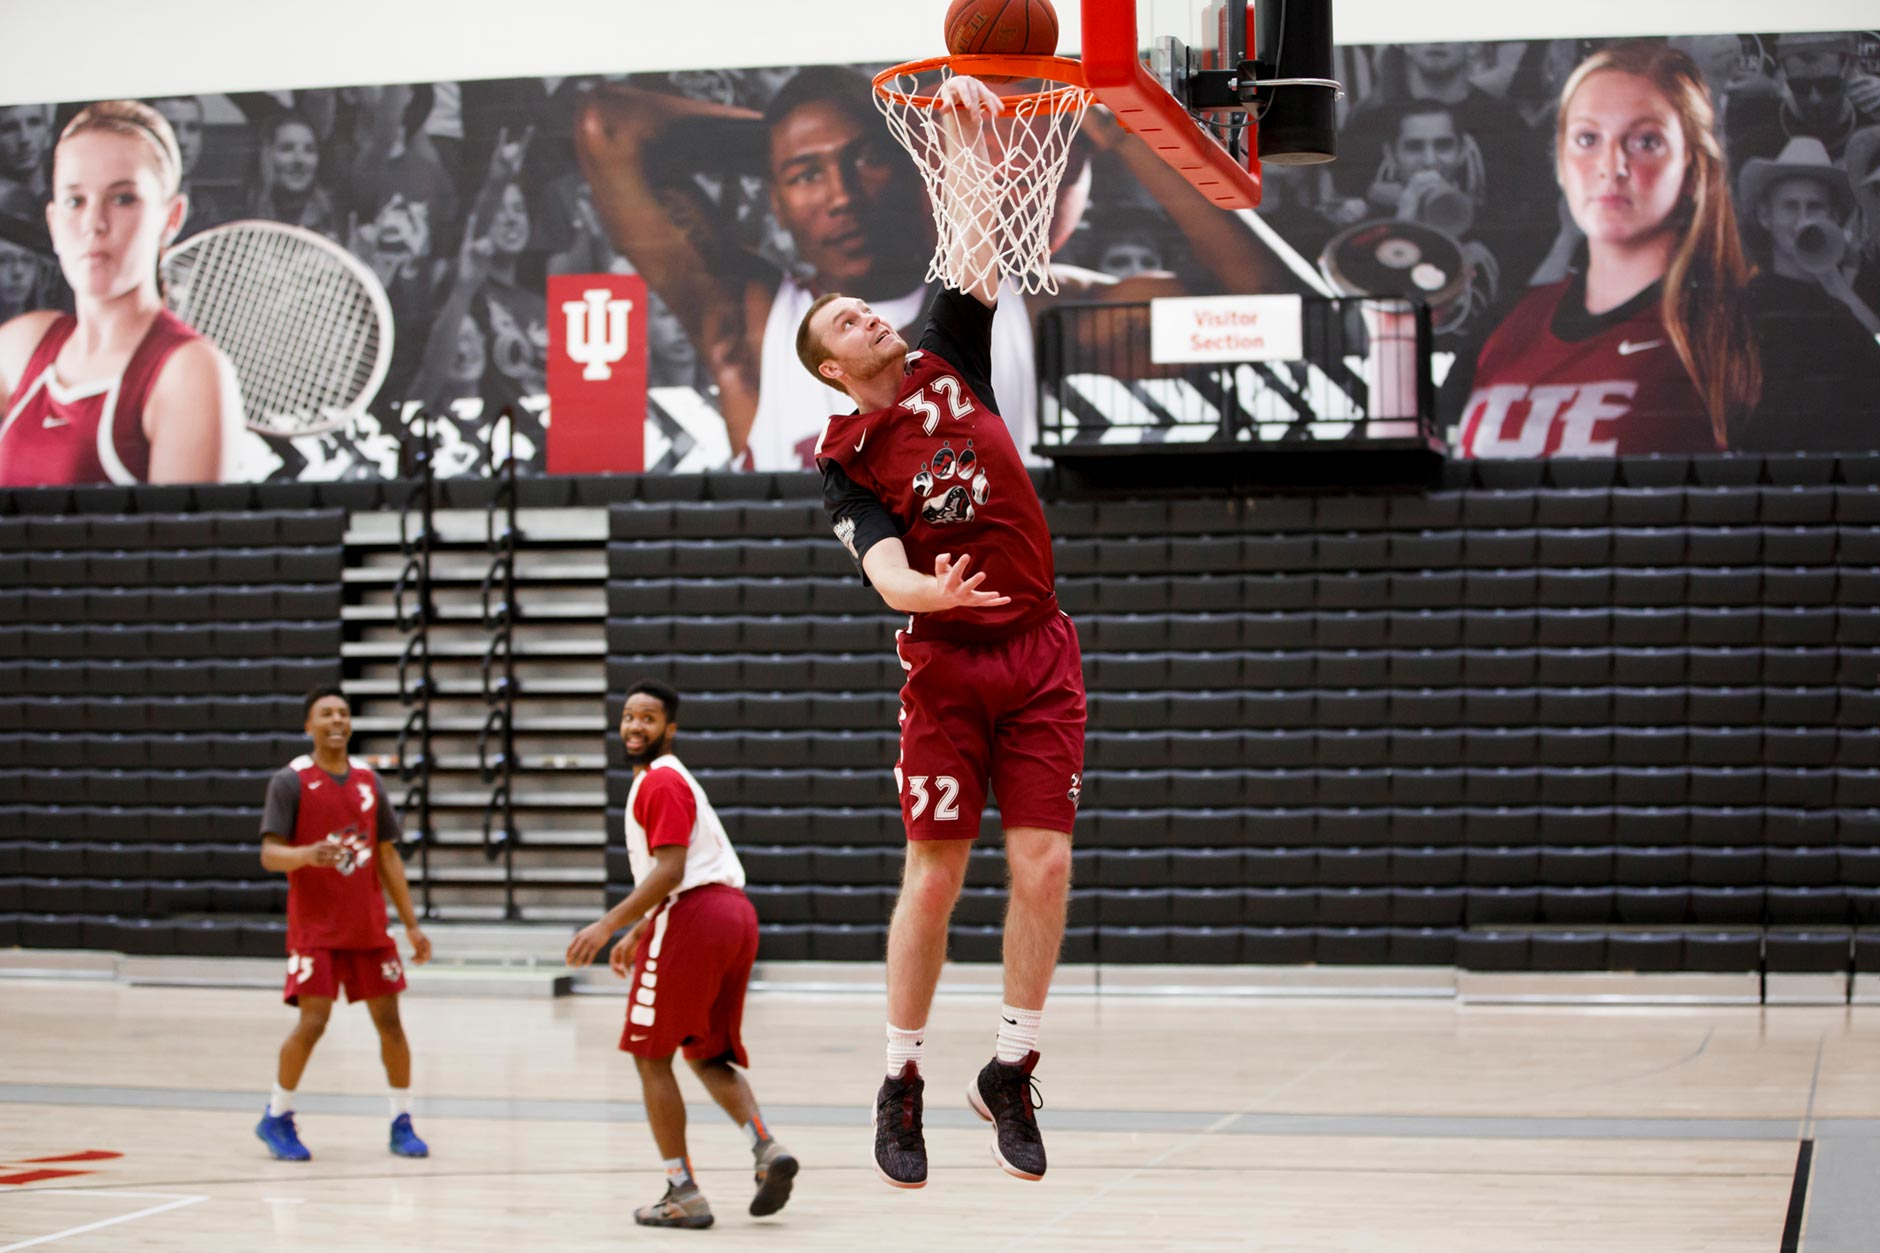 Lucas Huffman, a graduating senior at IU East, dunks in a pick-up basketball game with teammates at the Student Activity Center in Richmond on Friday, April 6, 2018. (James Brosher/IU Communications)